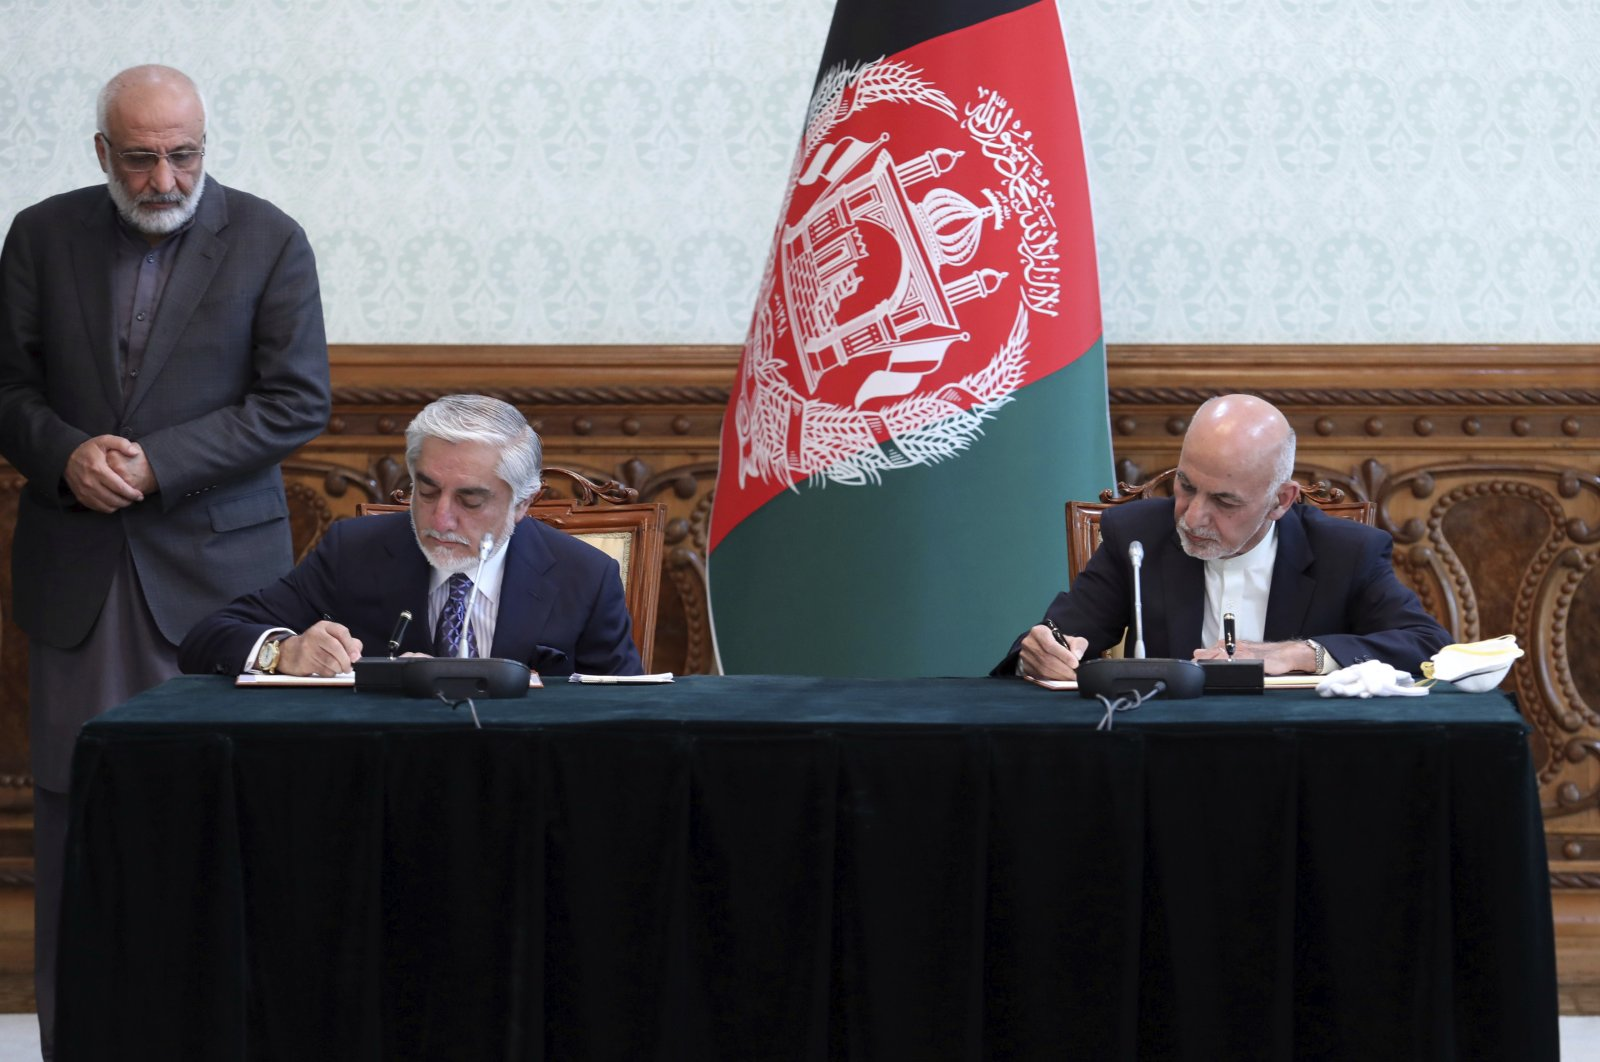 Afghan President Ashraf Ghani, right, and political rival Abdullah Abdullah sign a power-sharing agreement at the presidential palace in Kabul, Afghanistan, Sunday, May 17, 2020. Afghanistan. (AP Photo)